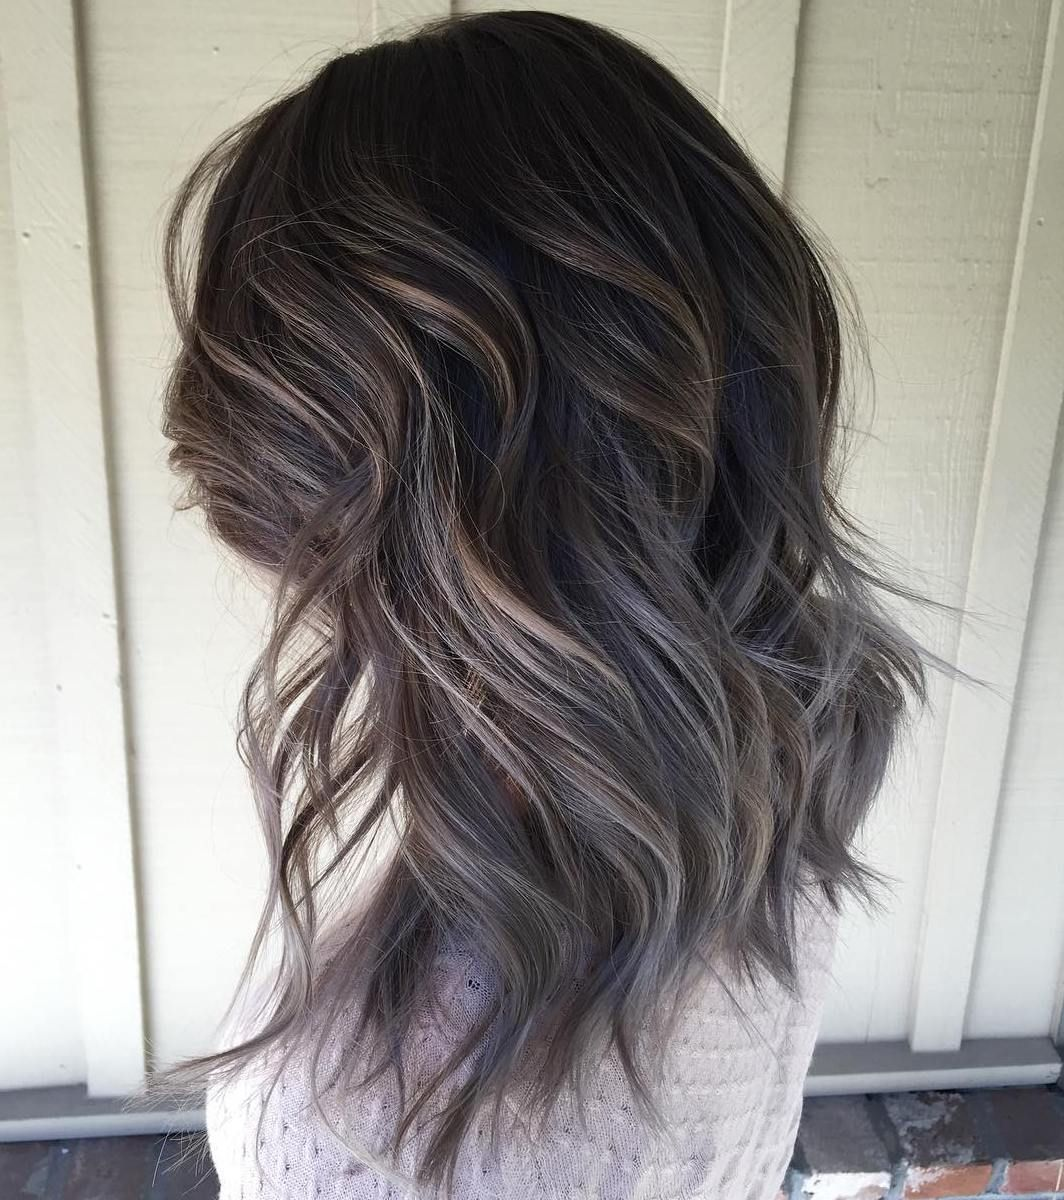 60 Shades Of Grey Silver And White Highlights For Eternal Youth Grey Hair Color Hair Styles Dark Hair With Highlights